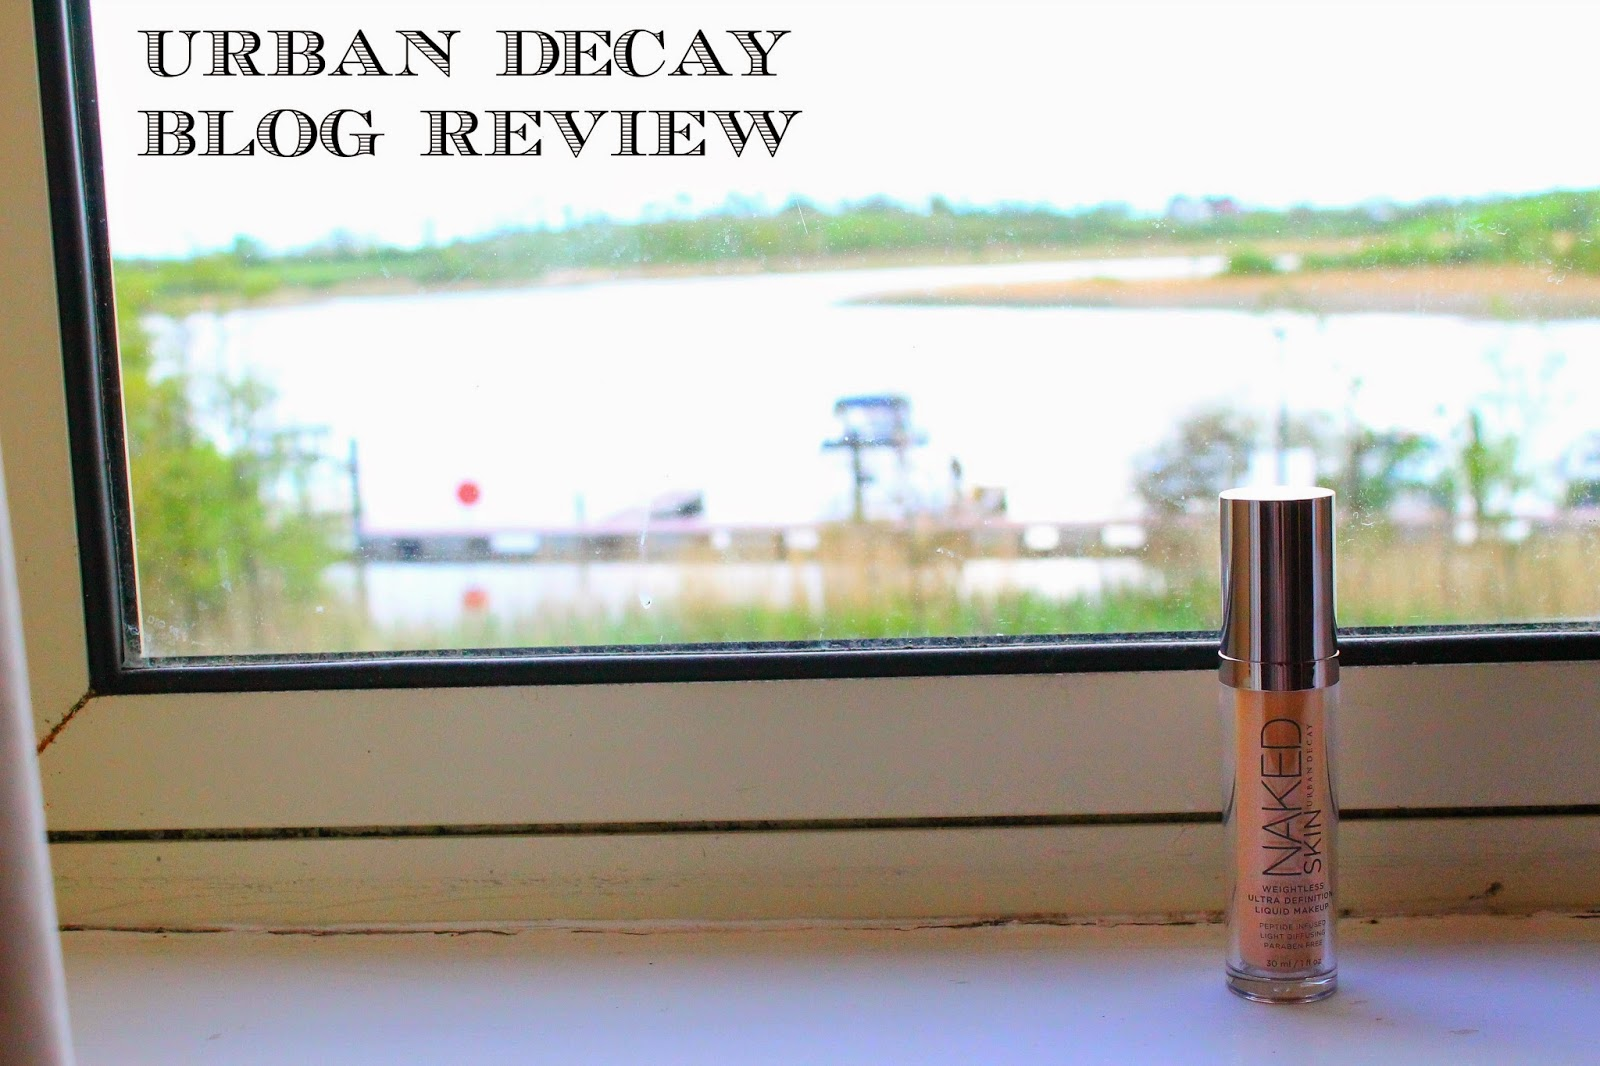 Urban Decay Blog Review